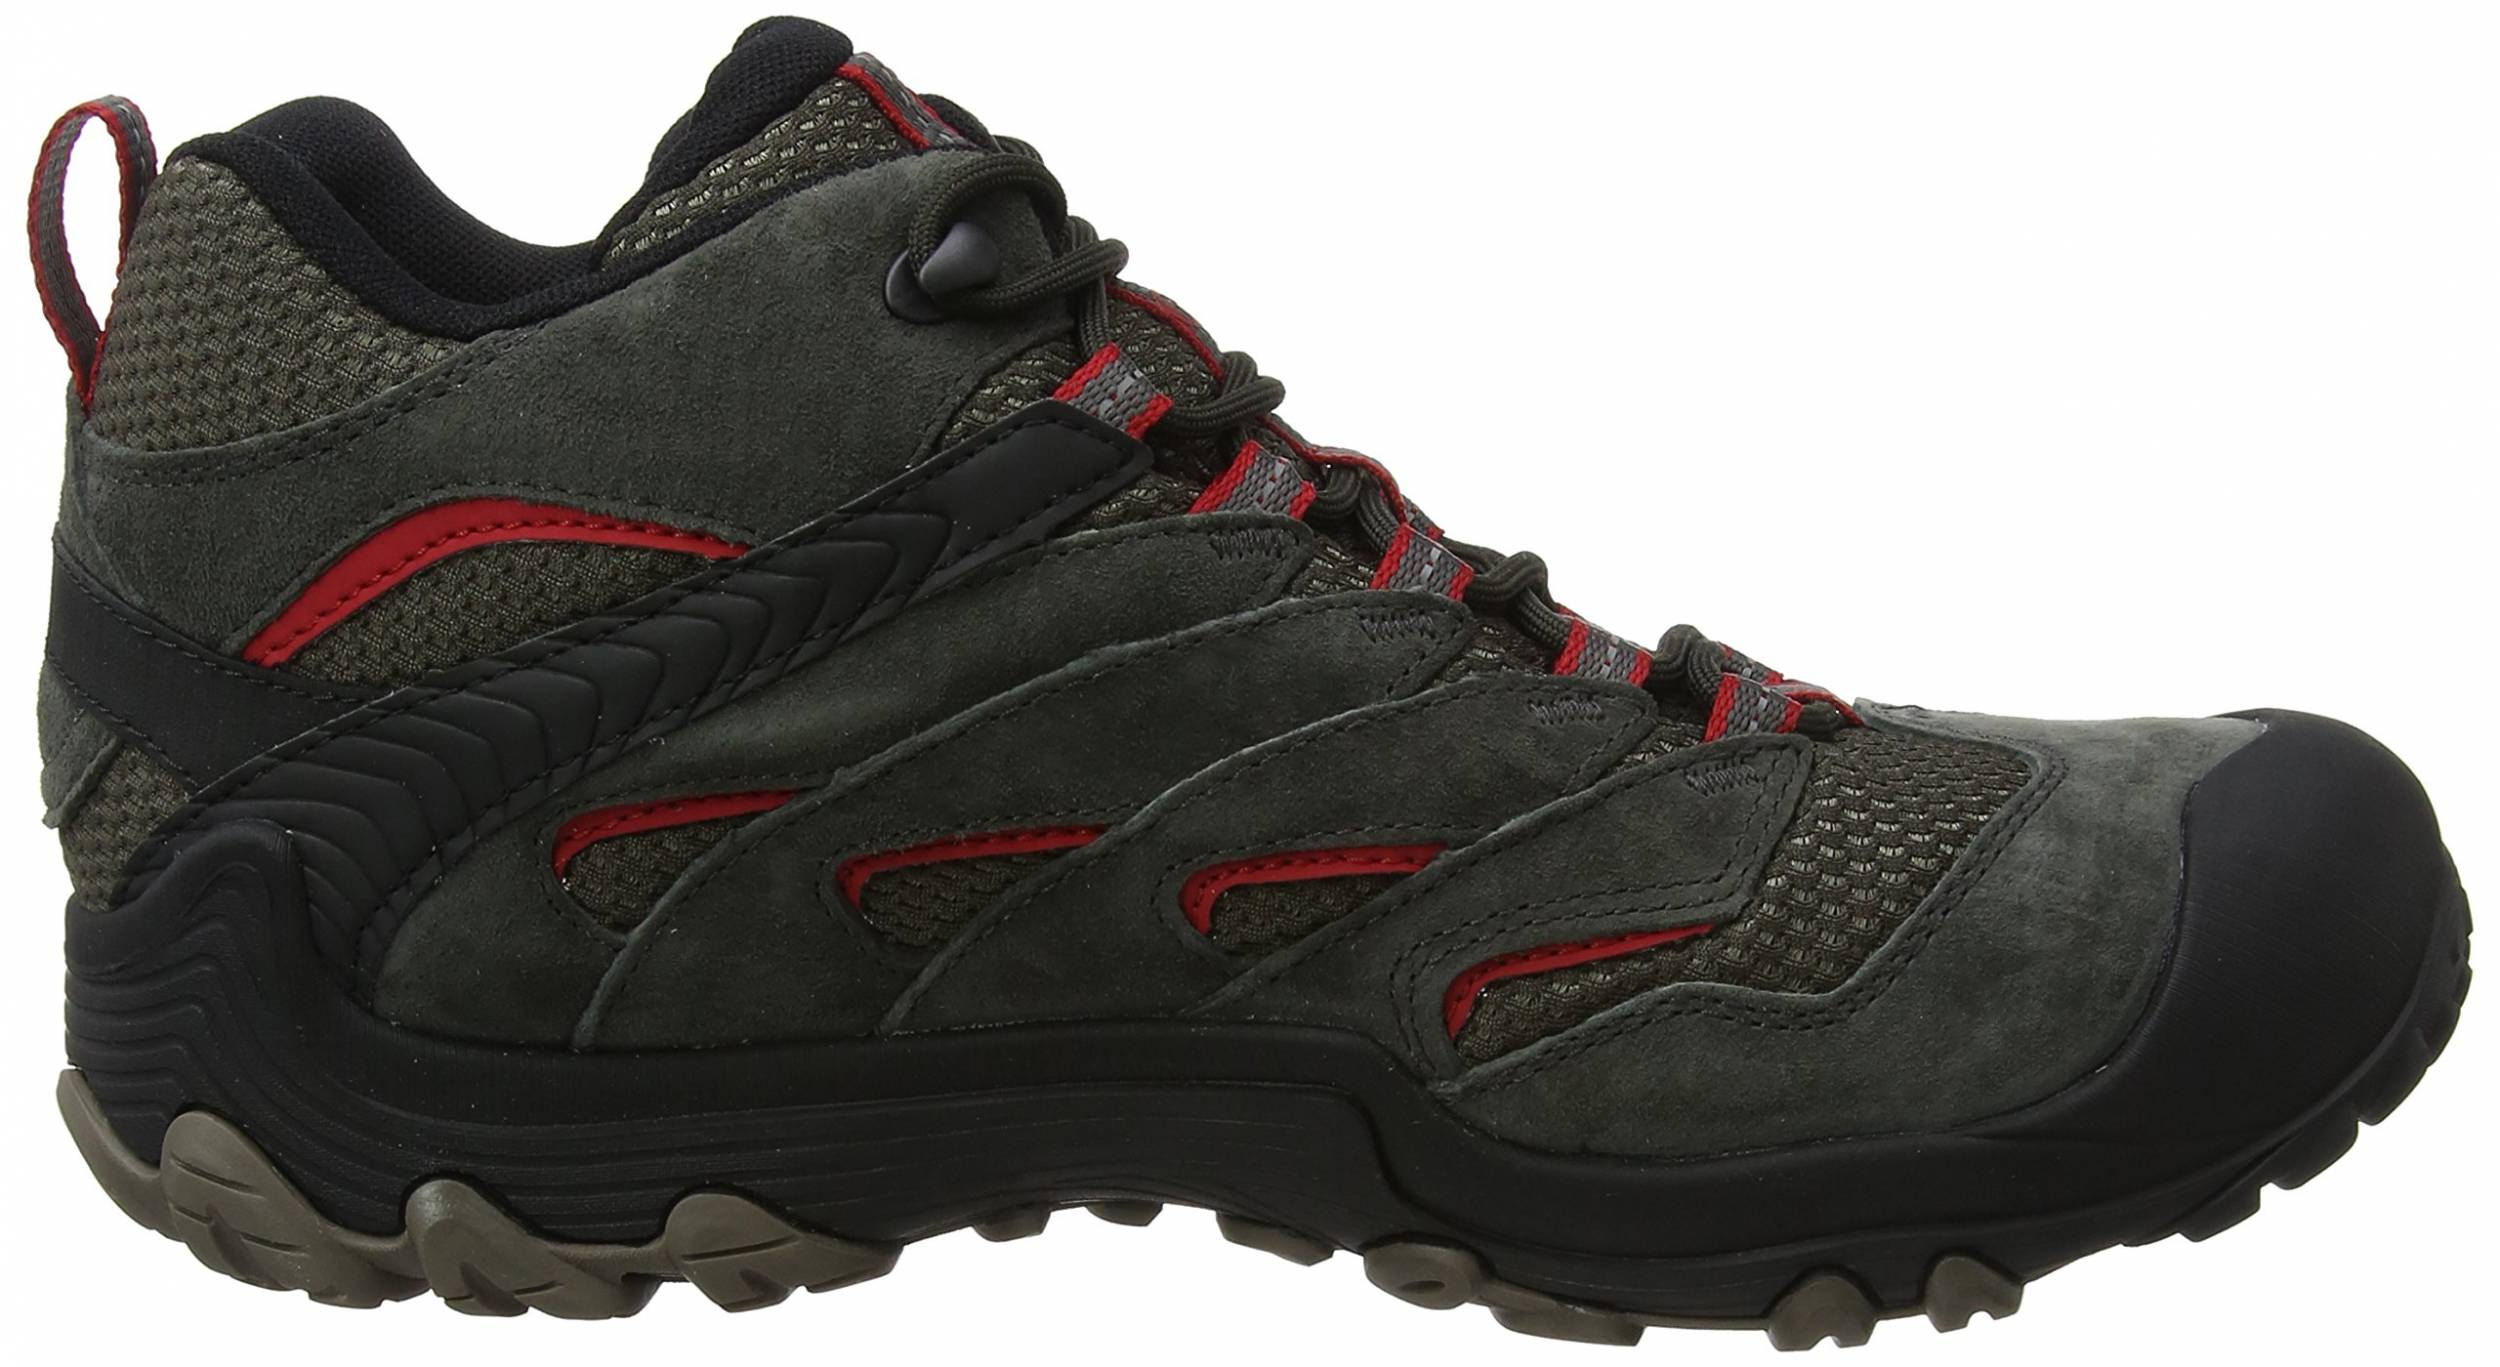 Review of Merrell Chameleon 7 Limit Mid